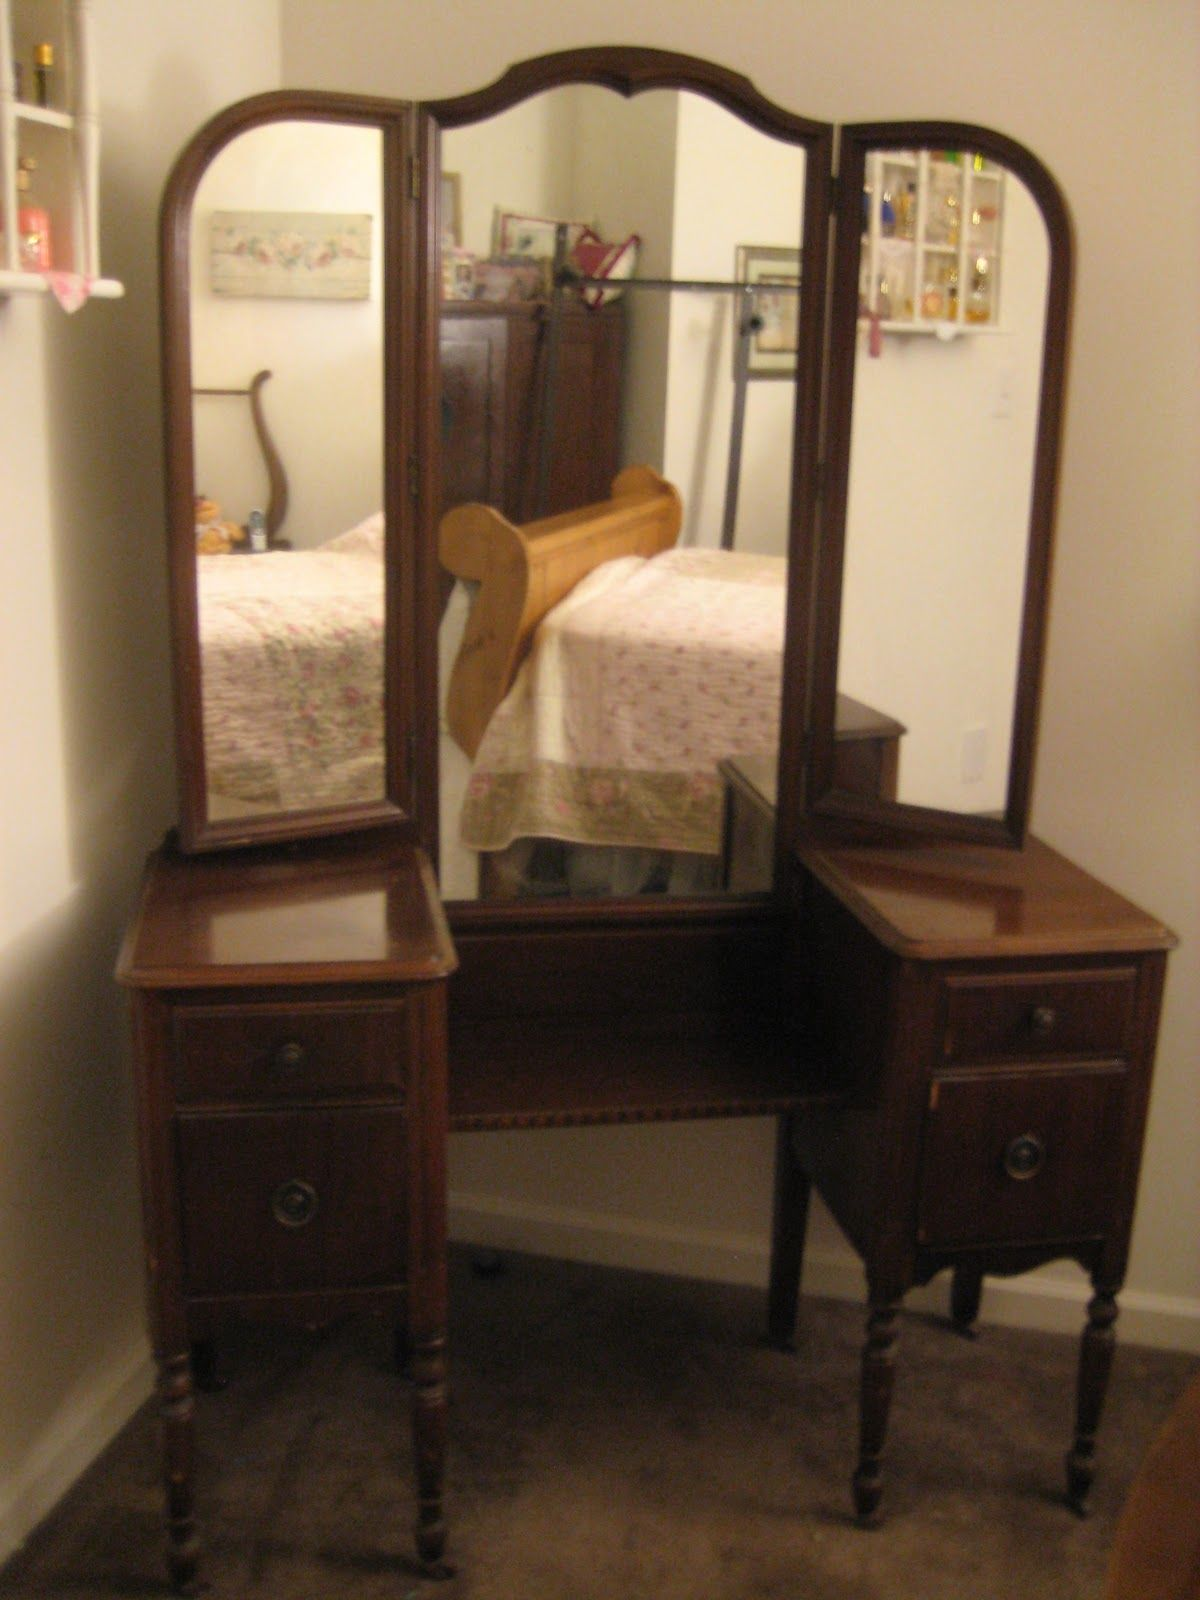 Antique Bedroom Vanity Bedroom vanity, Bedroom vanity